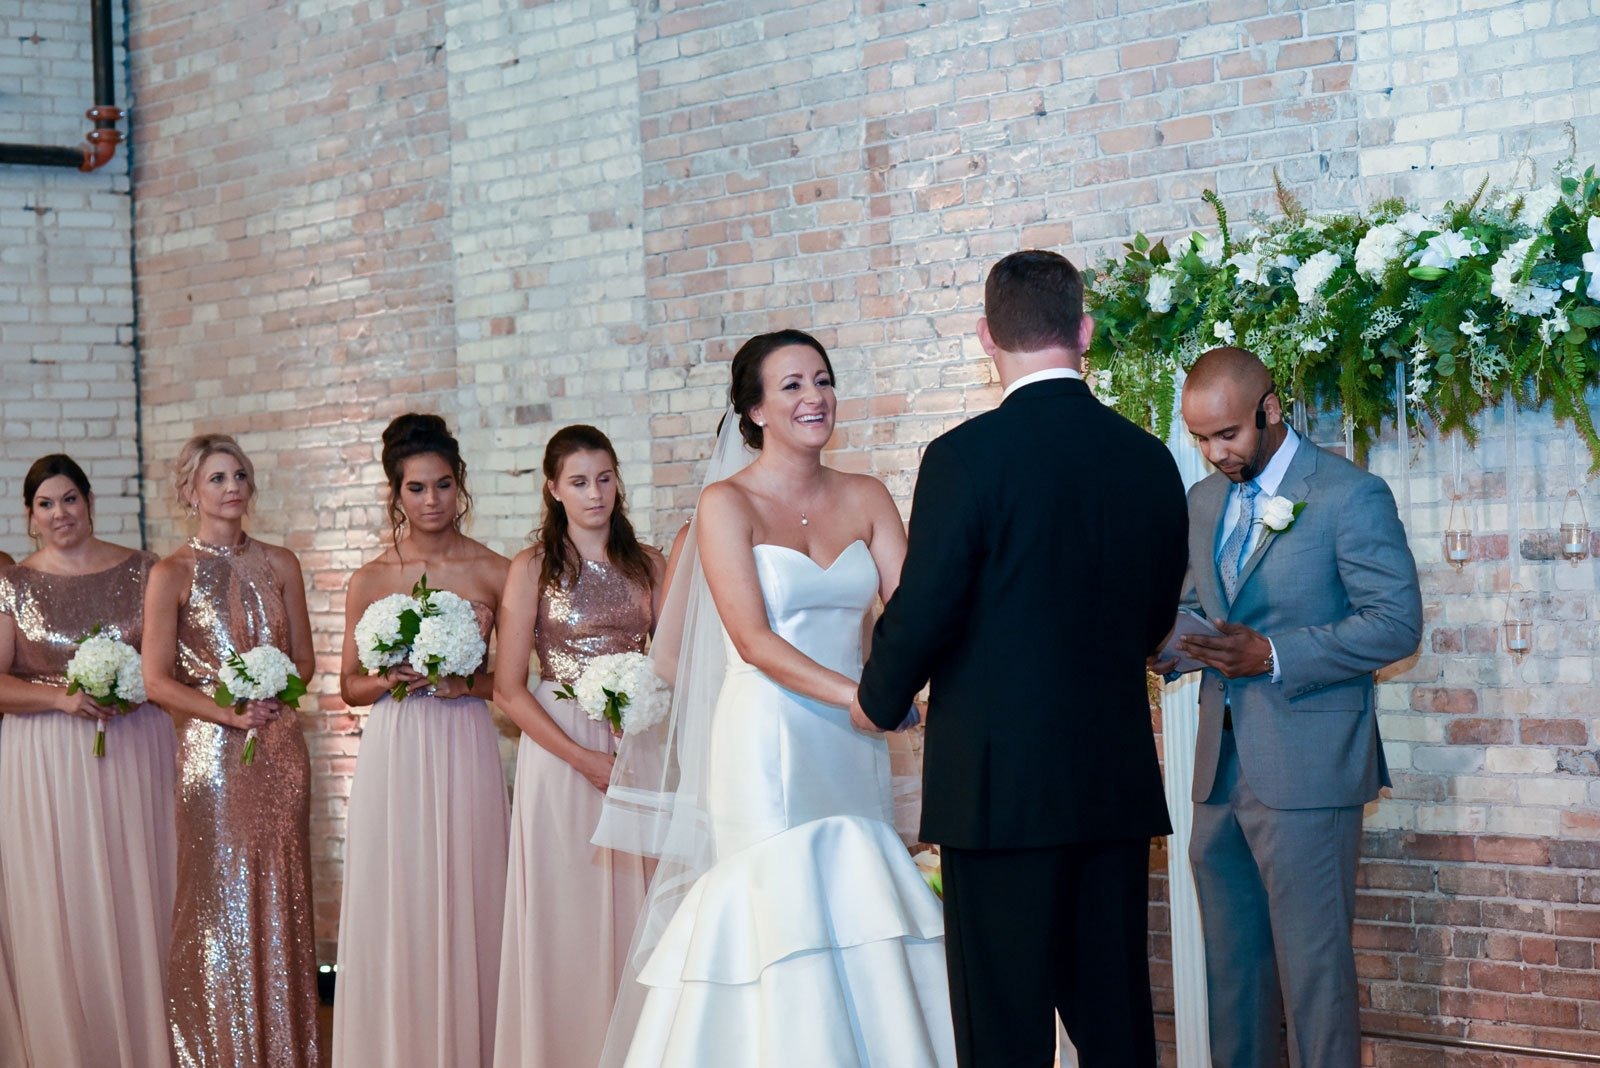 exchanging-vows-at-wedding-in-harris-building